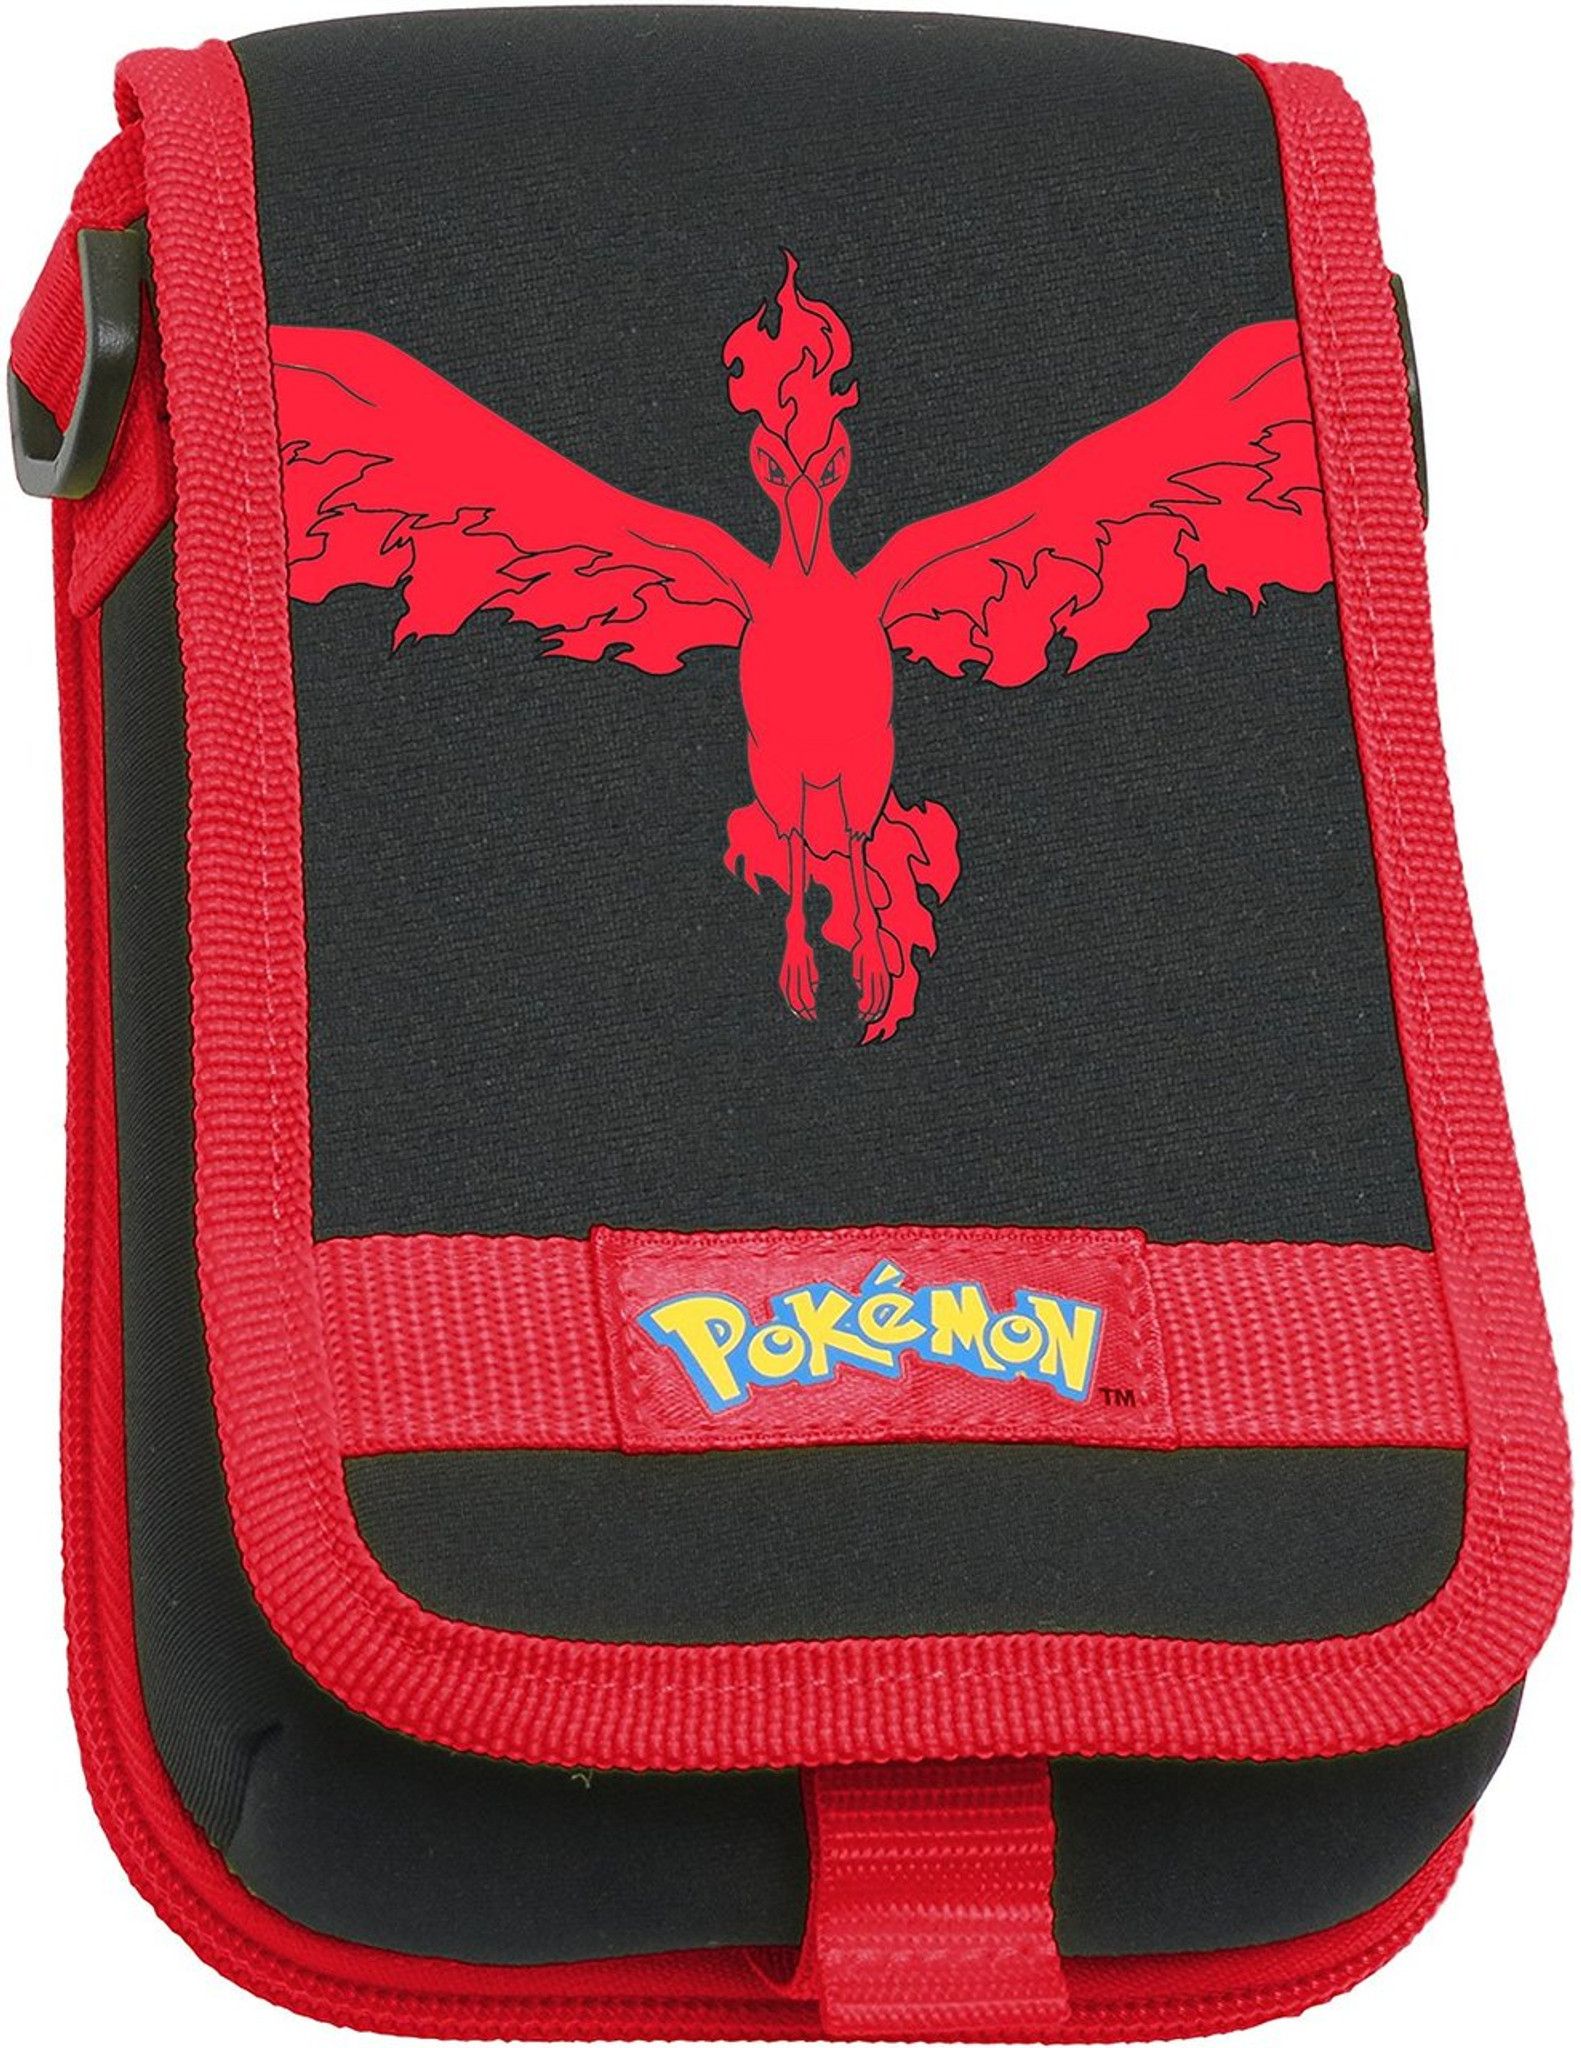 Pokemon Moltres Travel Pouch - Red for Nintendo 3DS XL